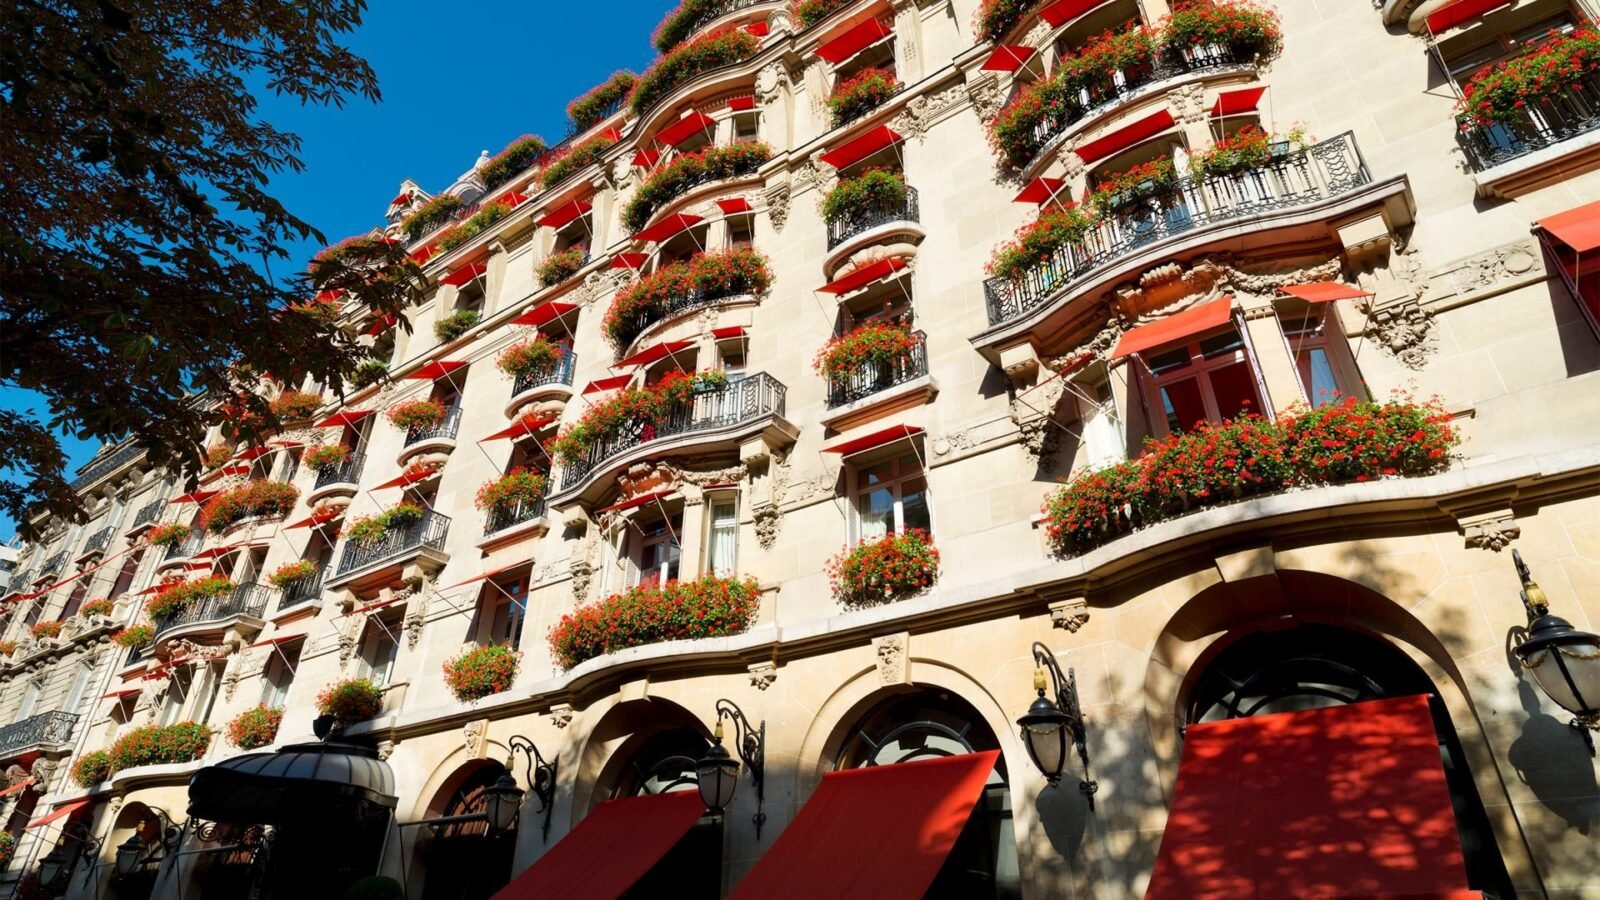 H tel plaza ath n e dorchester collection for Hotel des bains paris 14e